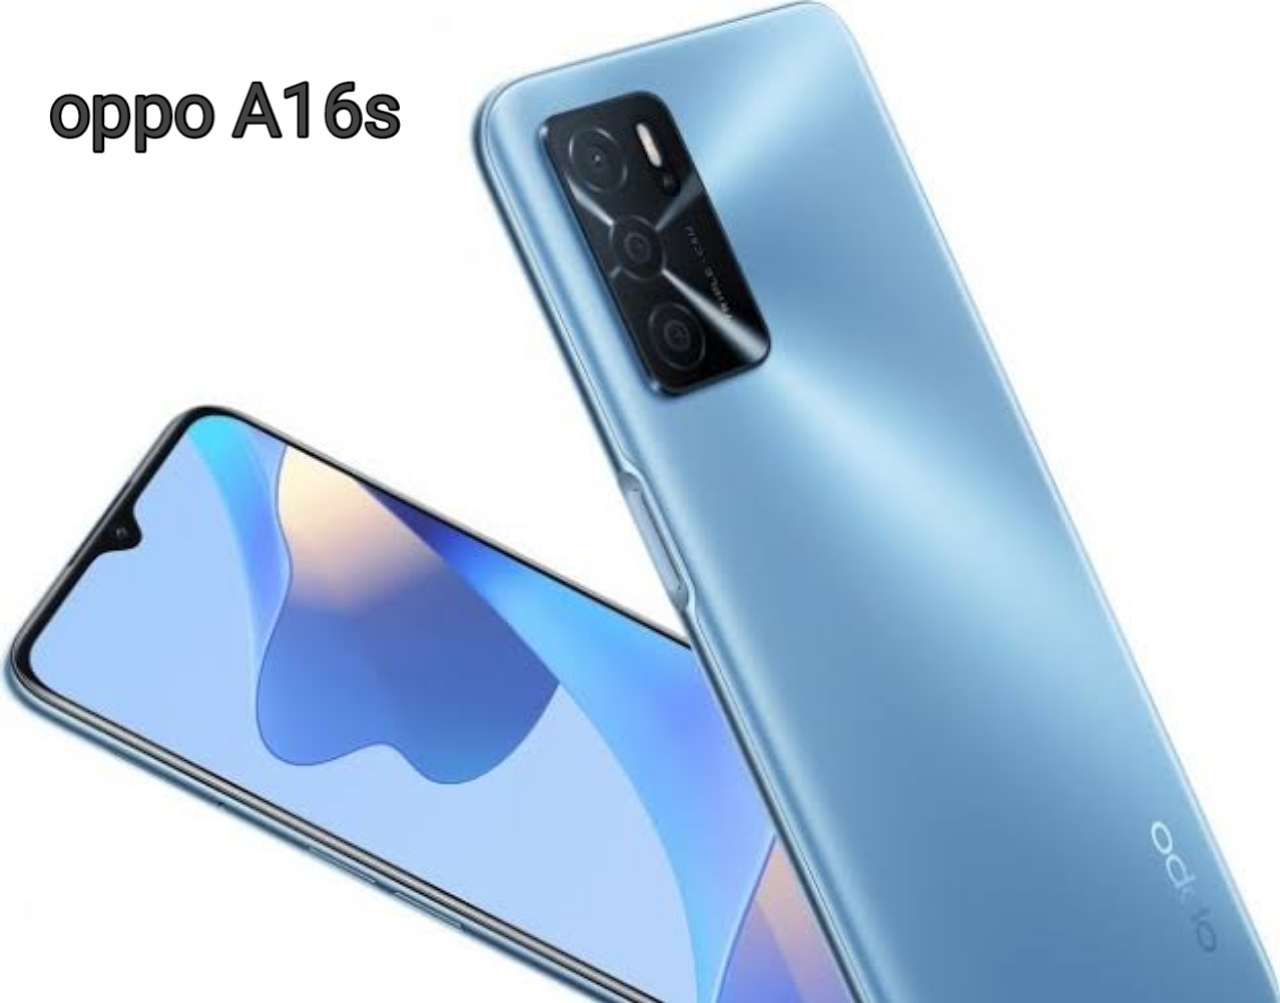 Oppo A16s price